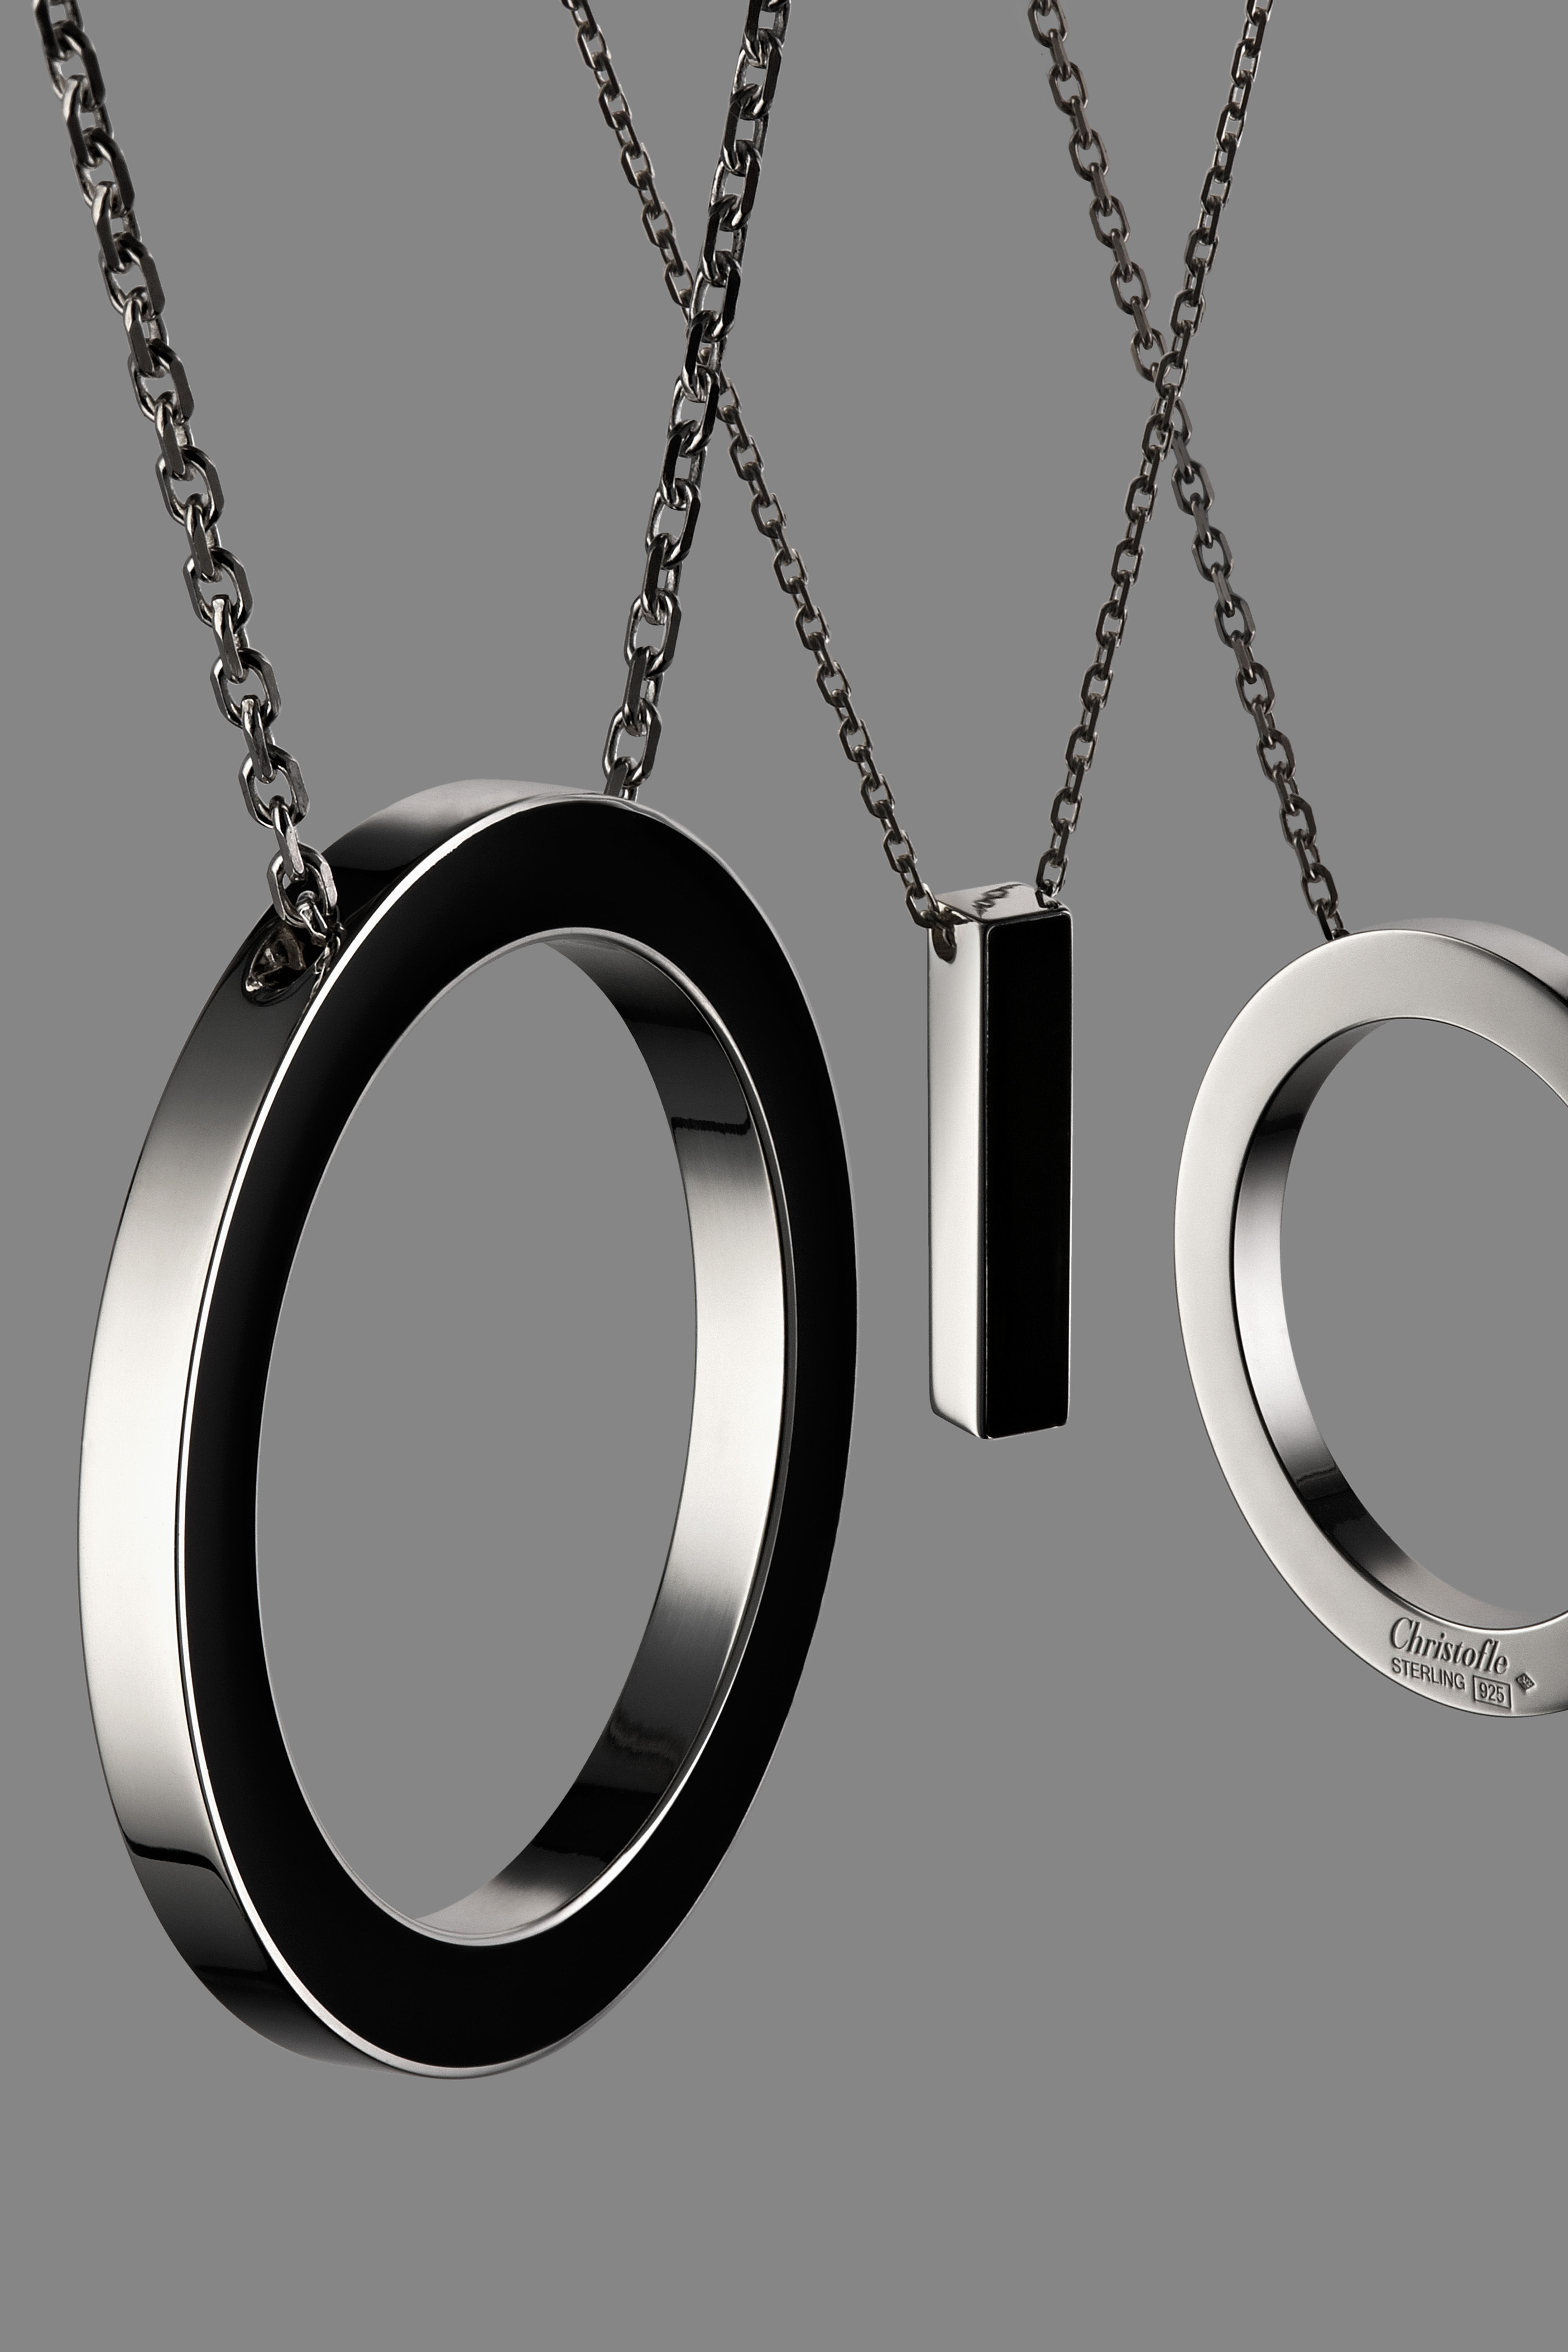 pendentif abstract 39 to cercle by ora ito argent noir cercle christofle. Black Bedroom Furniture Sets. Home Design Ideas